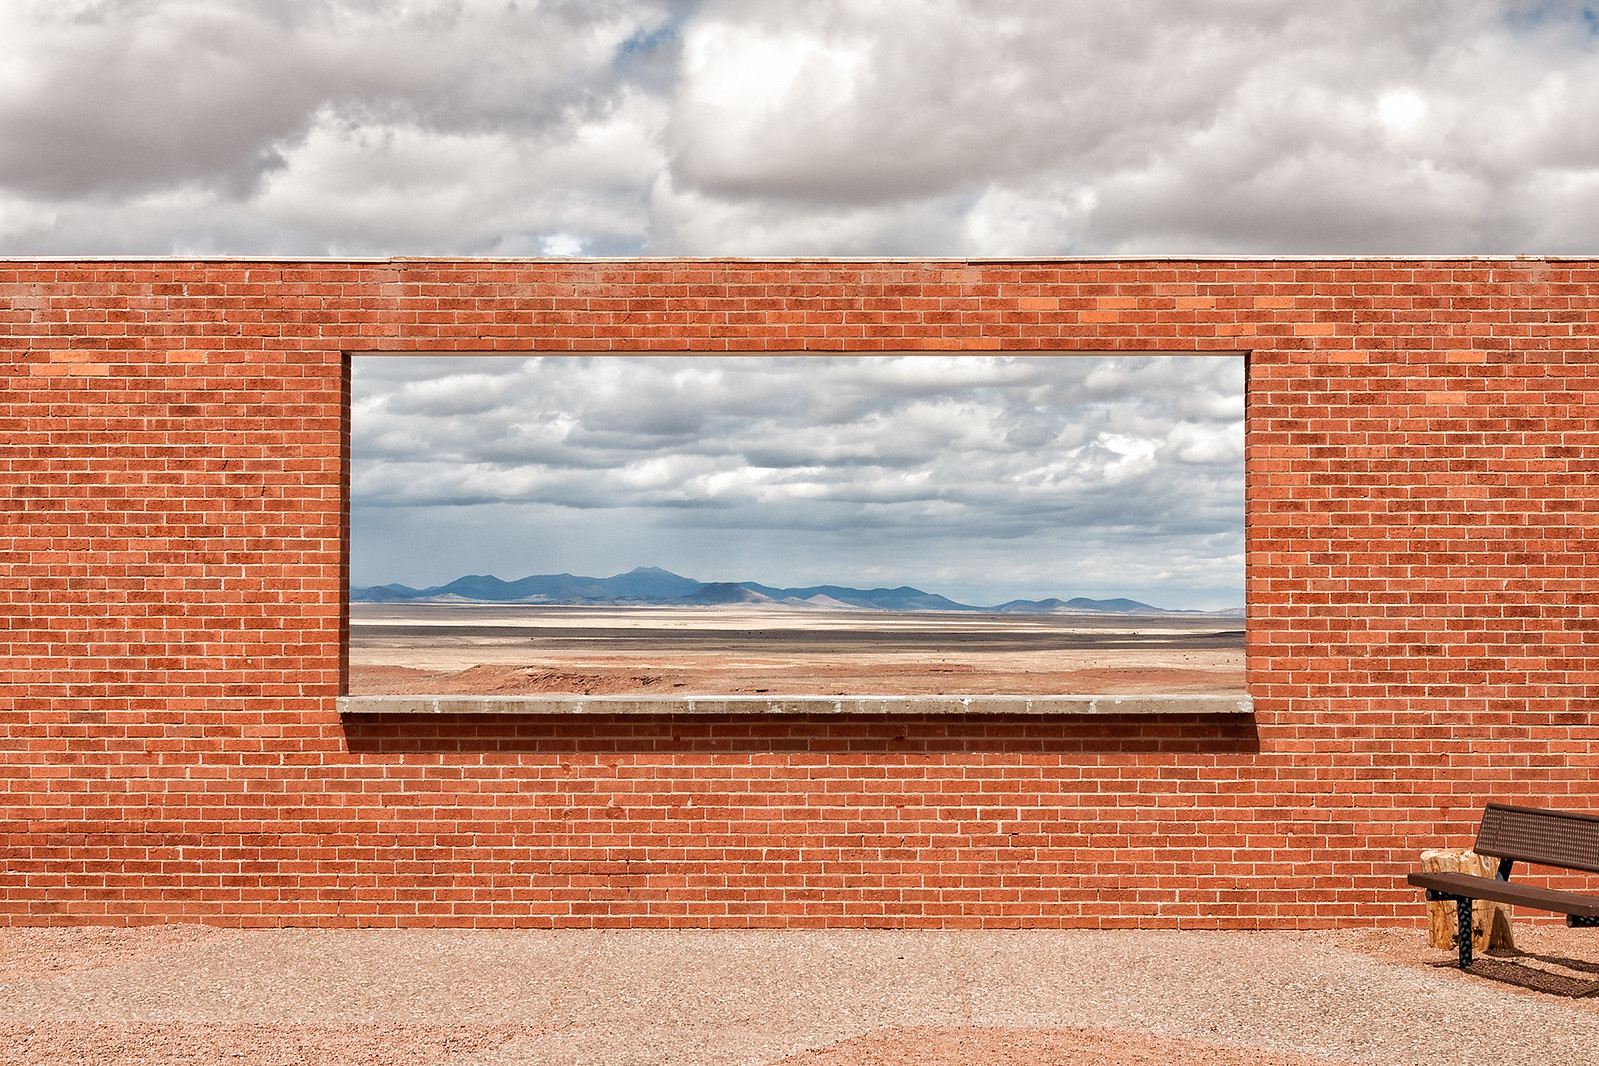 picture window. meteor crater, az. 2007.   by eyetwist